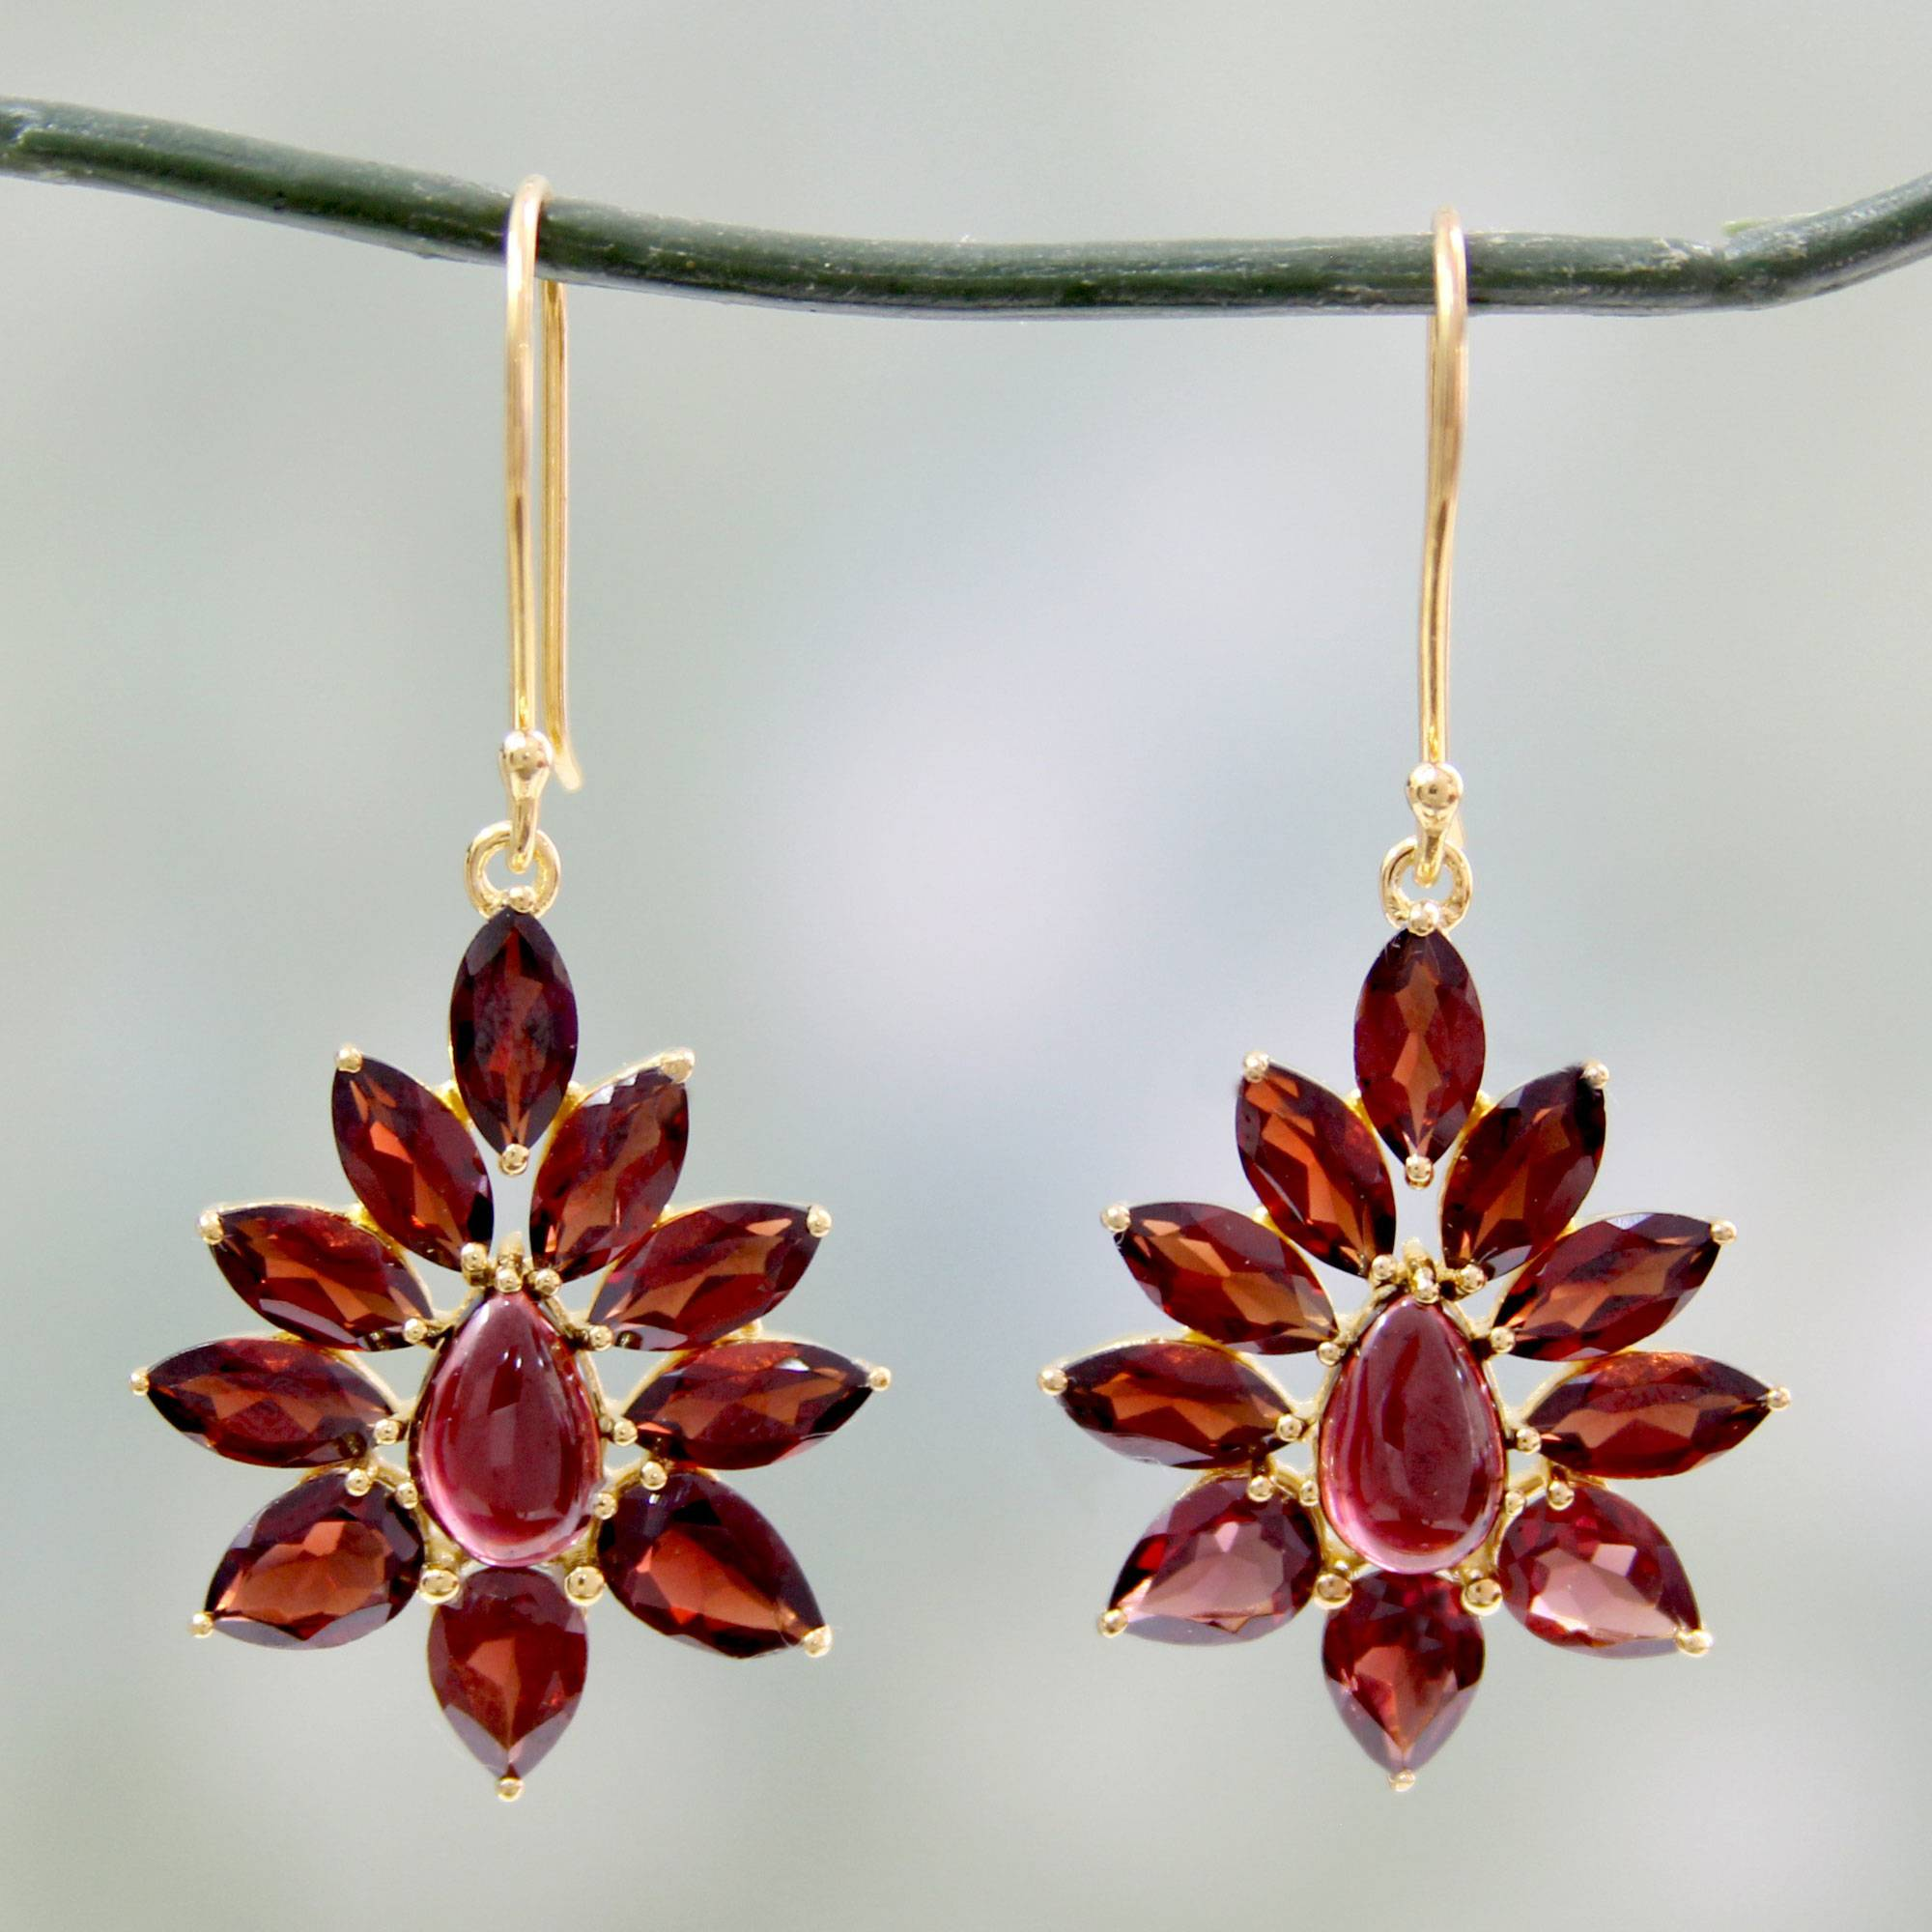 Earrings Guide 'Claret Sunburst' Hand Crafted 18k Gold Plated Earrings with Garnets